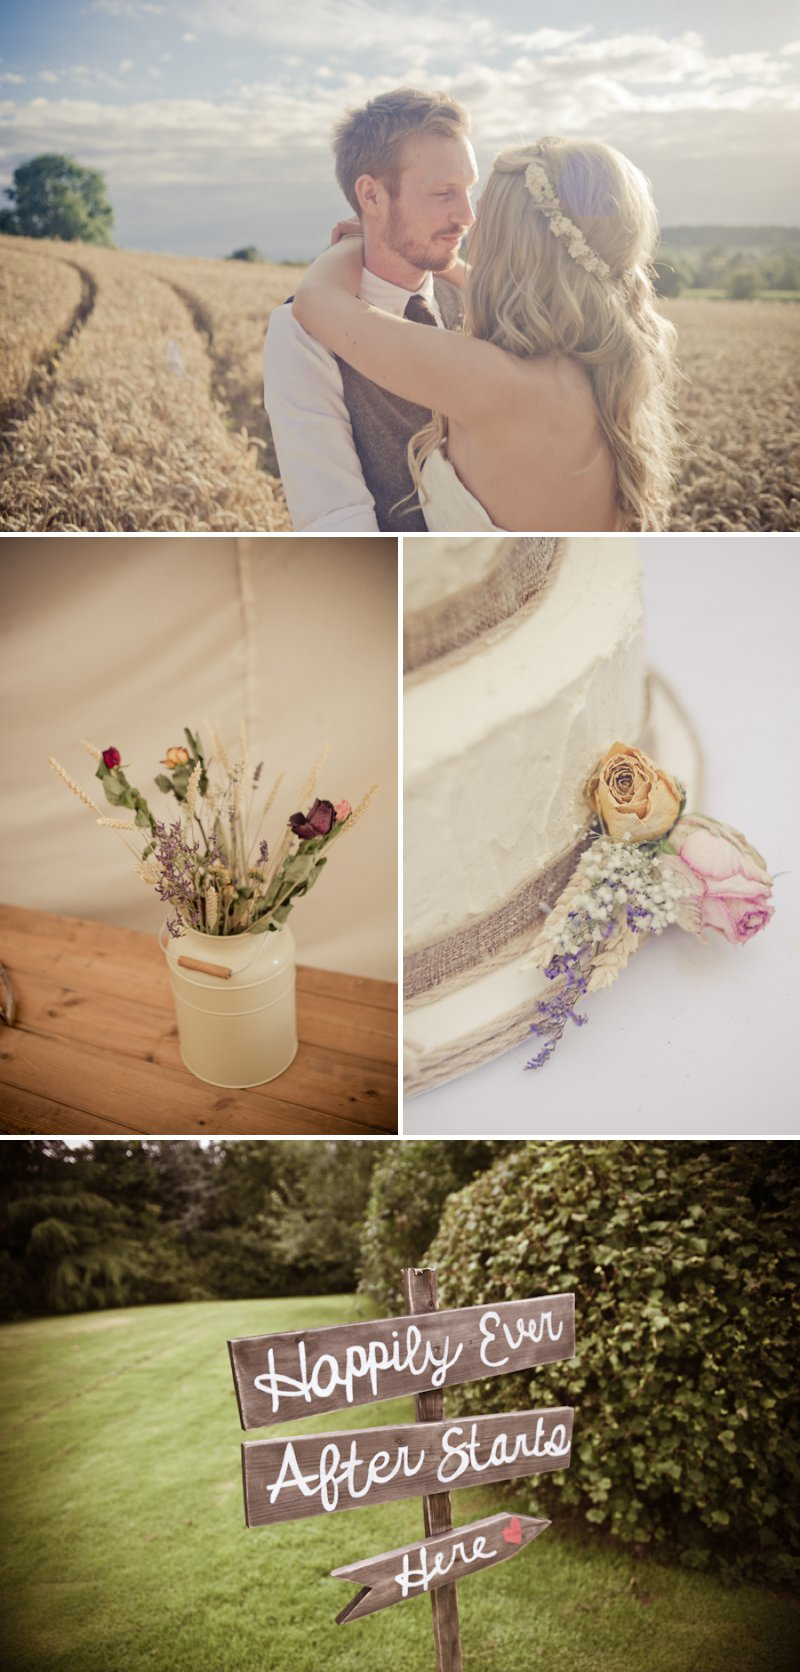 Rustic Wedding At Newton House In Derbyshire With Bride In Sophia Tolli Gown With A Dried Flower Headpiece From The Artisan Dried Flower Co And Groom In Tweed Waistcoat With Images From Jake Morley 1